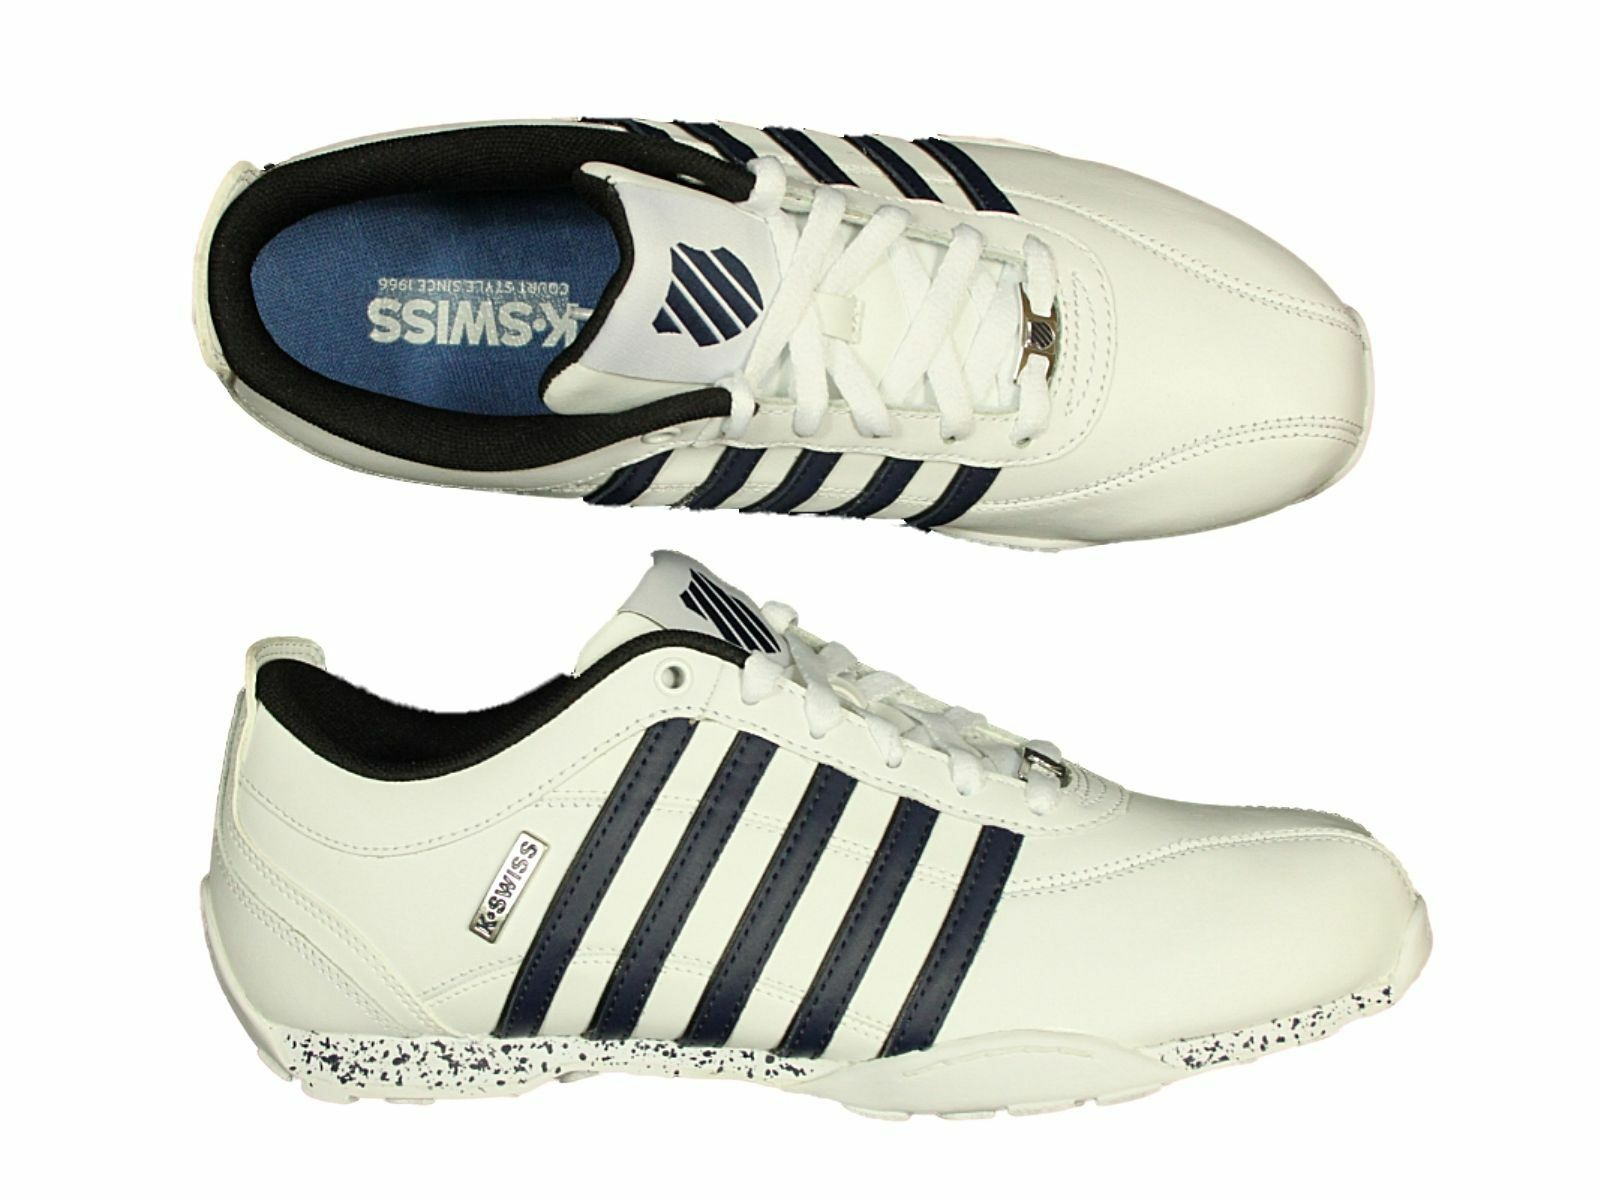 K SWISS UP BNWT TRAINERS ARVEE LACE UP SWISS IN Weiß BLACK GREY BROWN CLEARANCE PRICE f0f130